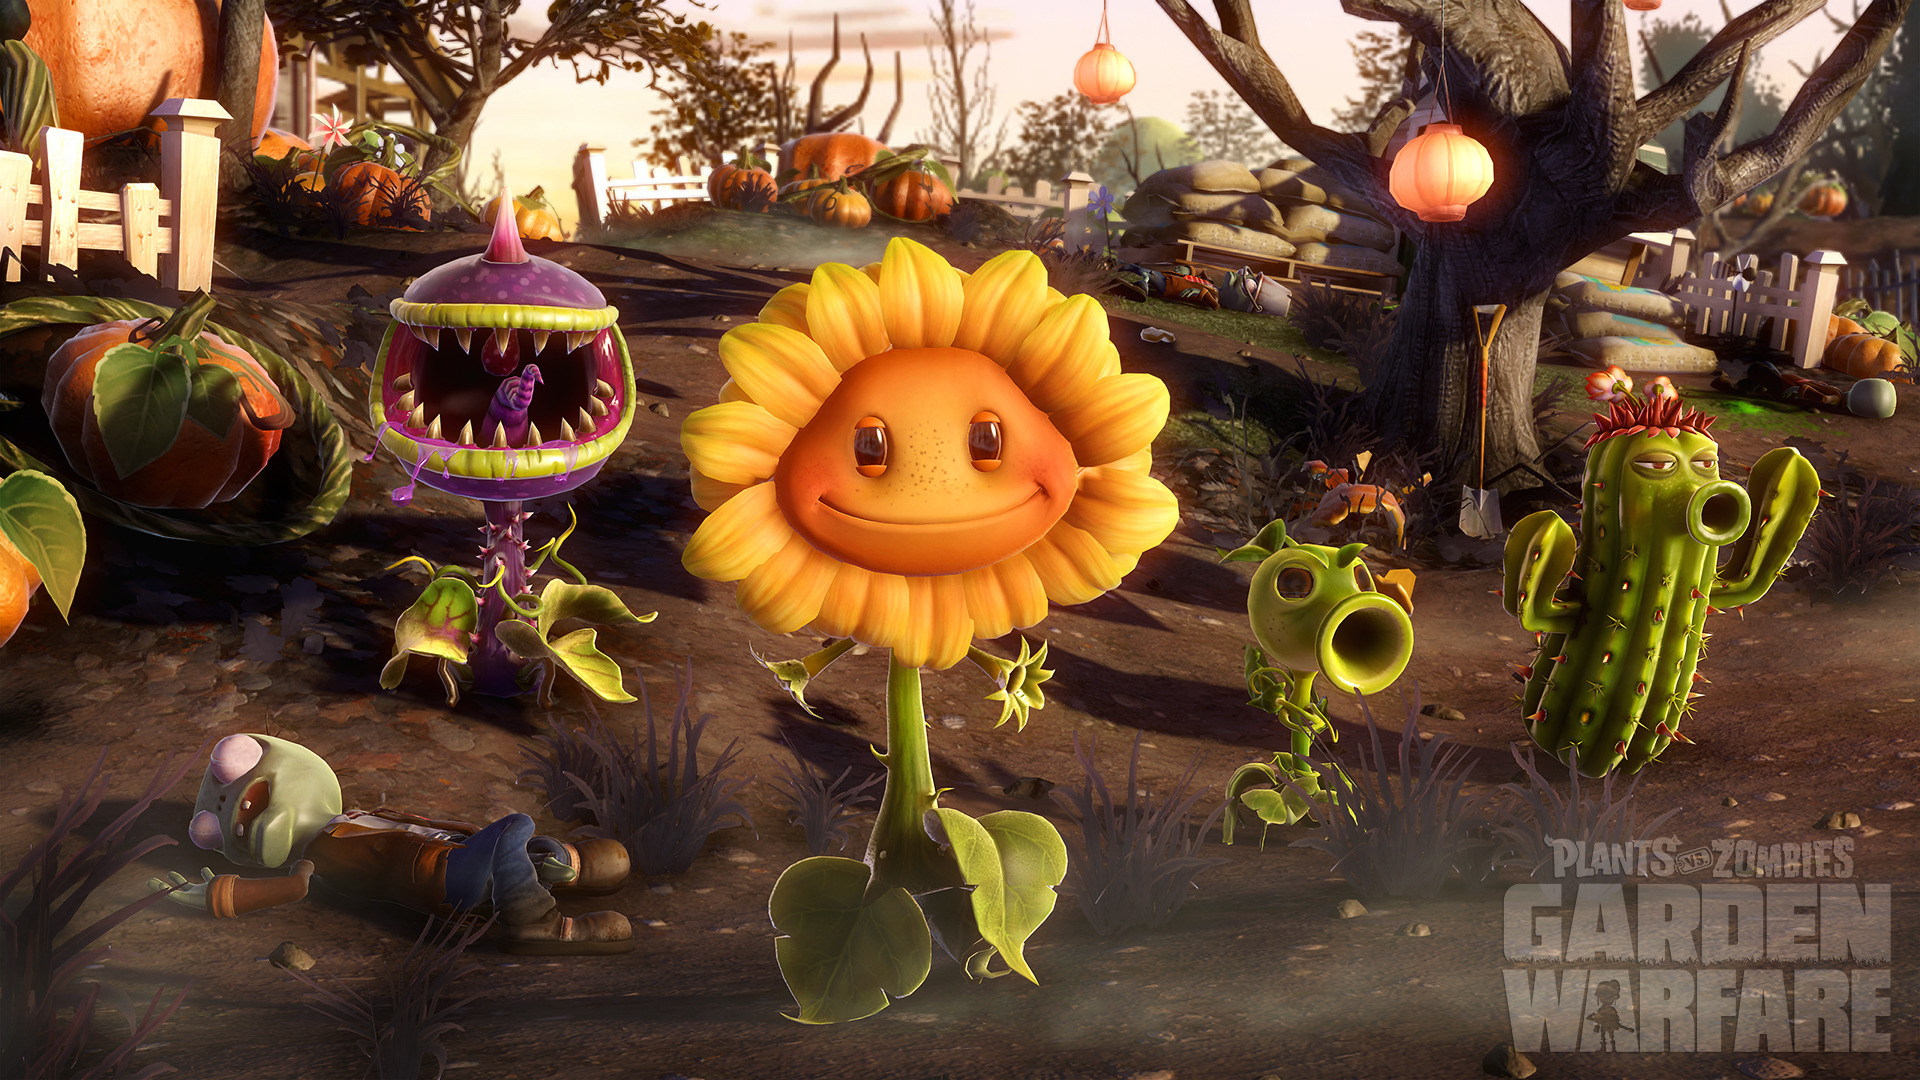 Fondos de pantalla de plants vs zombies garden warfare 1 y for Plante vs zombie garden warfare 2